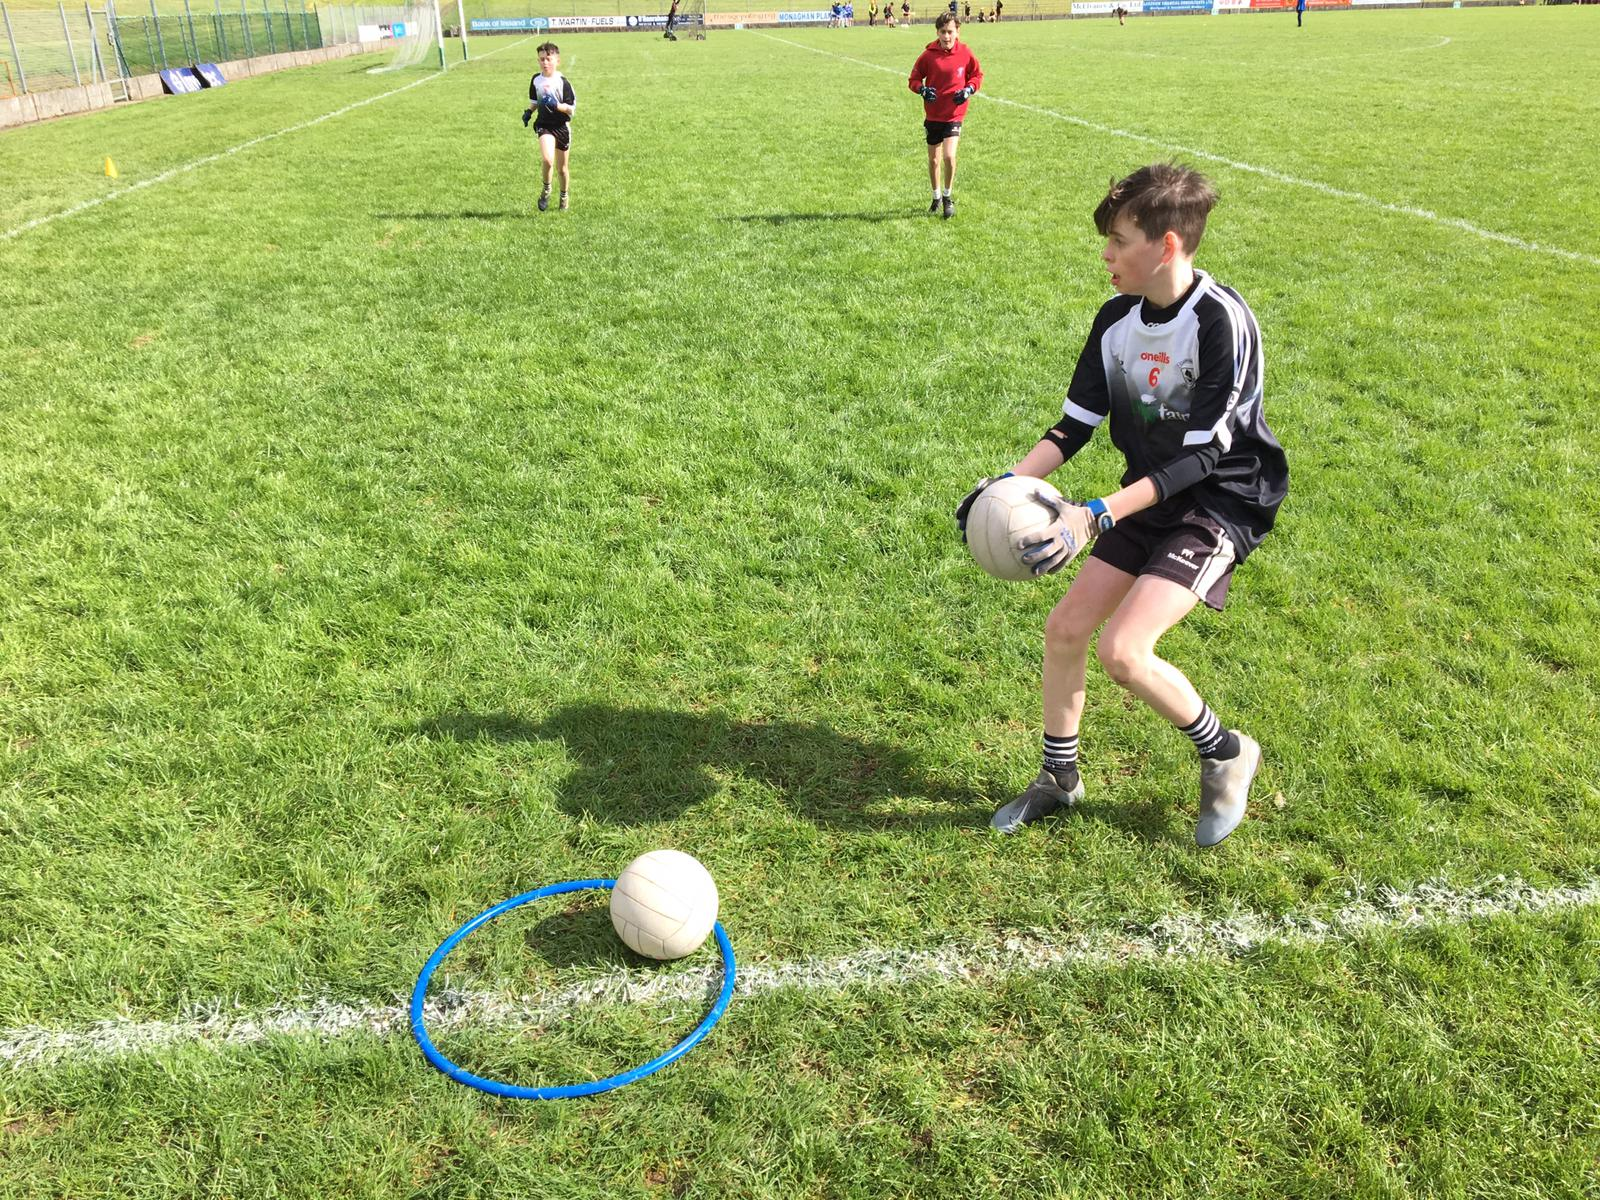 Great Skills on Show at Primary School Skills Competition!